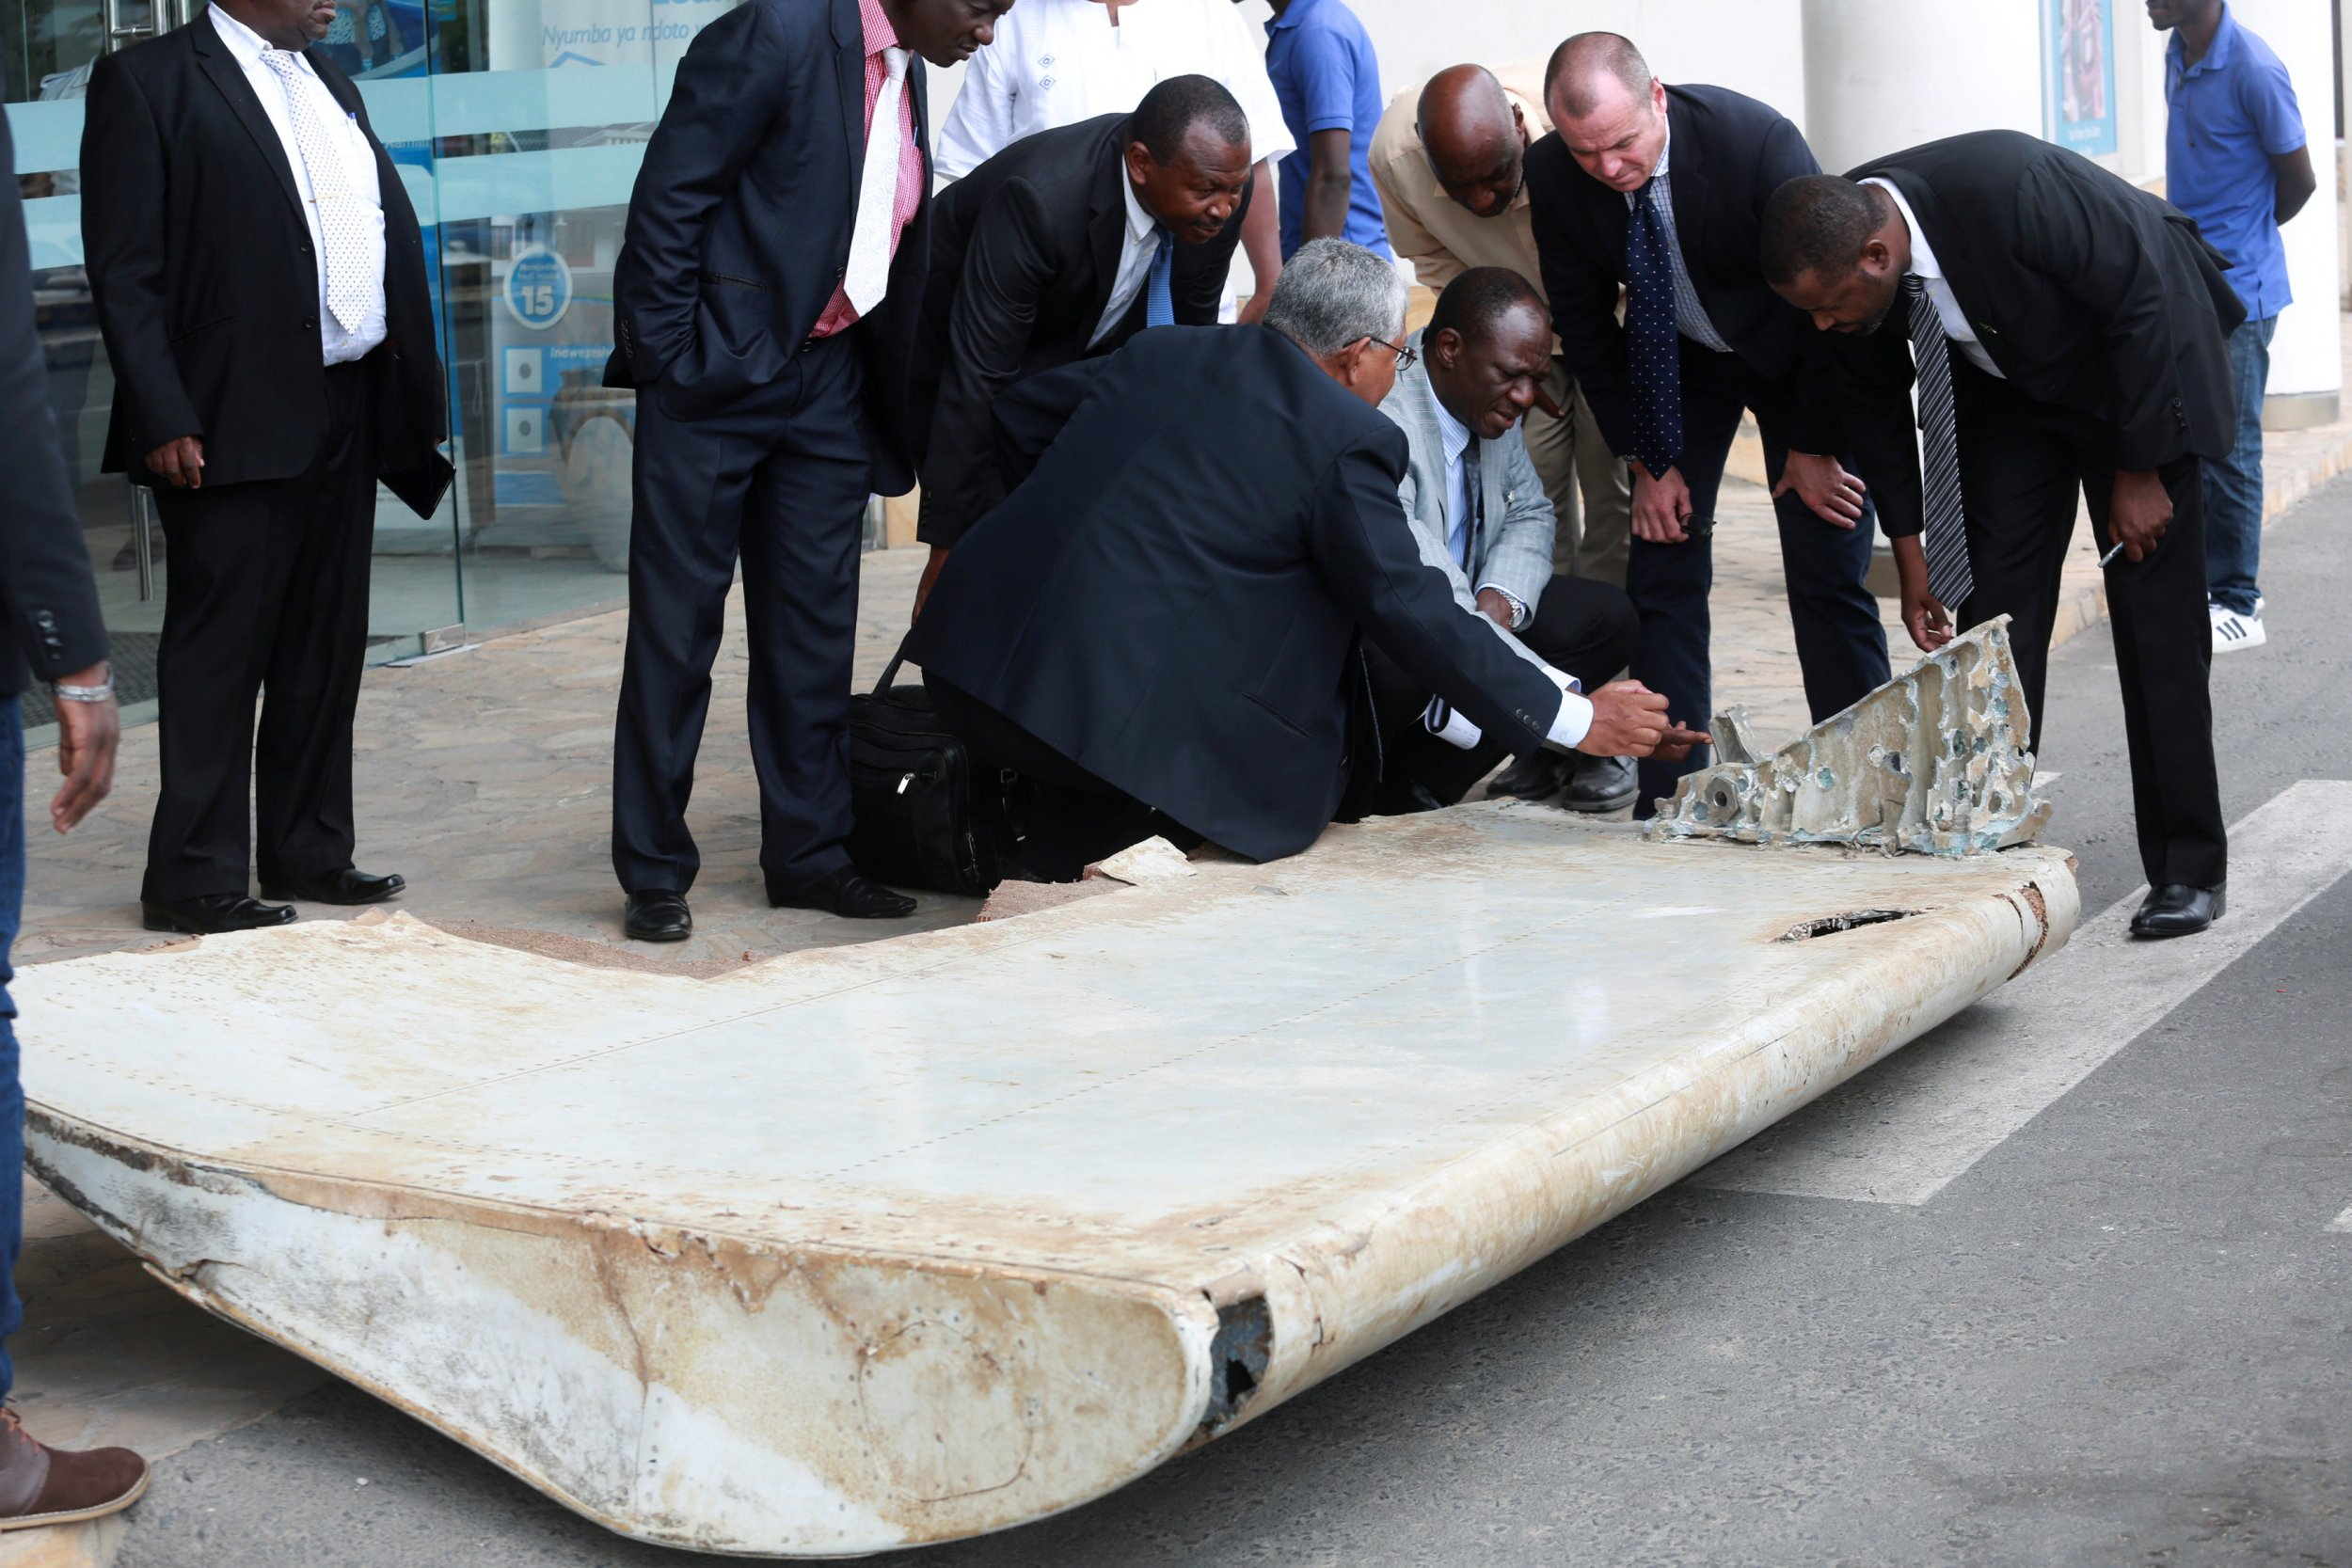 A massive part of MH370's wing did wash up on a beach off Tanzania